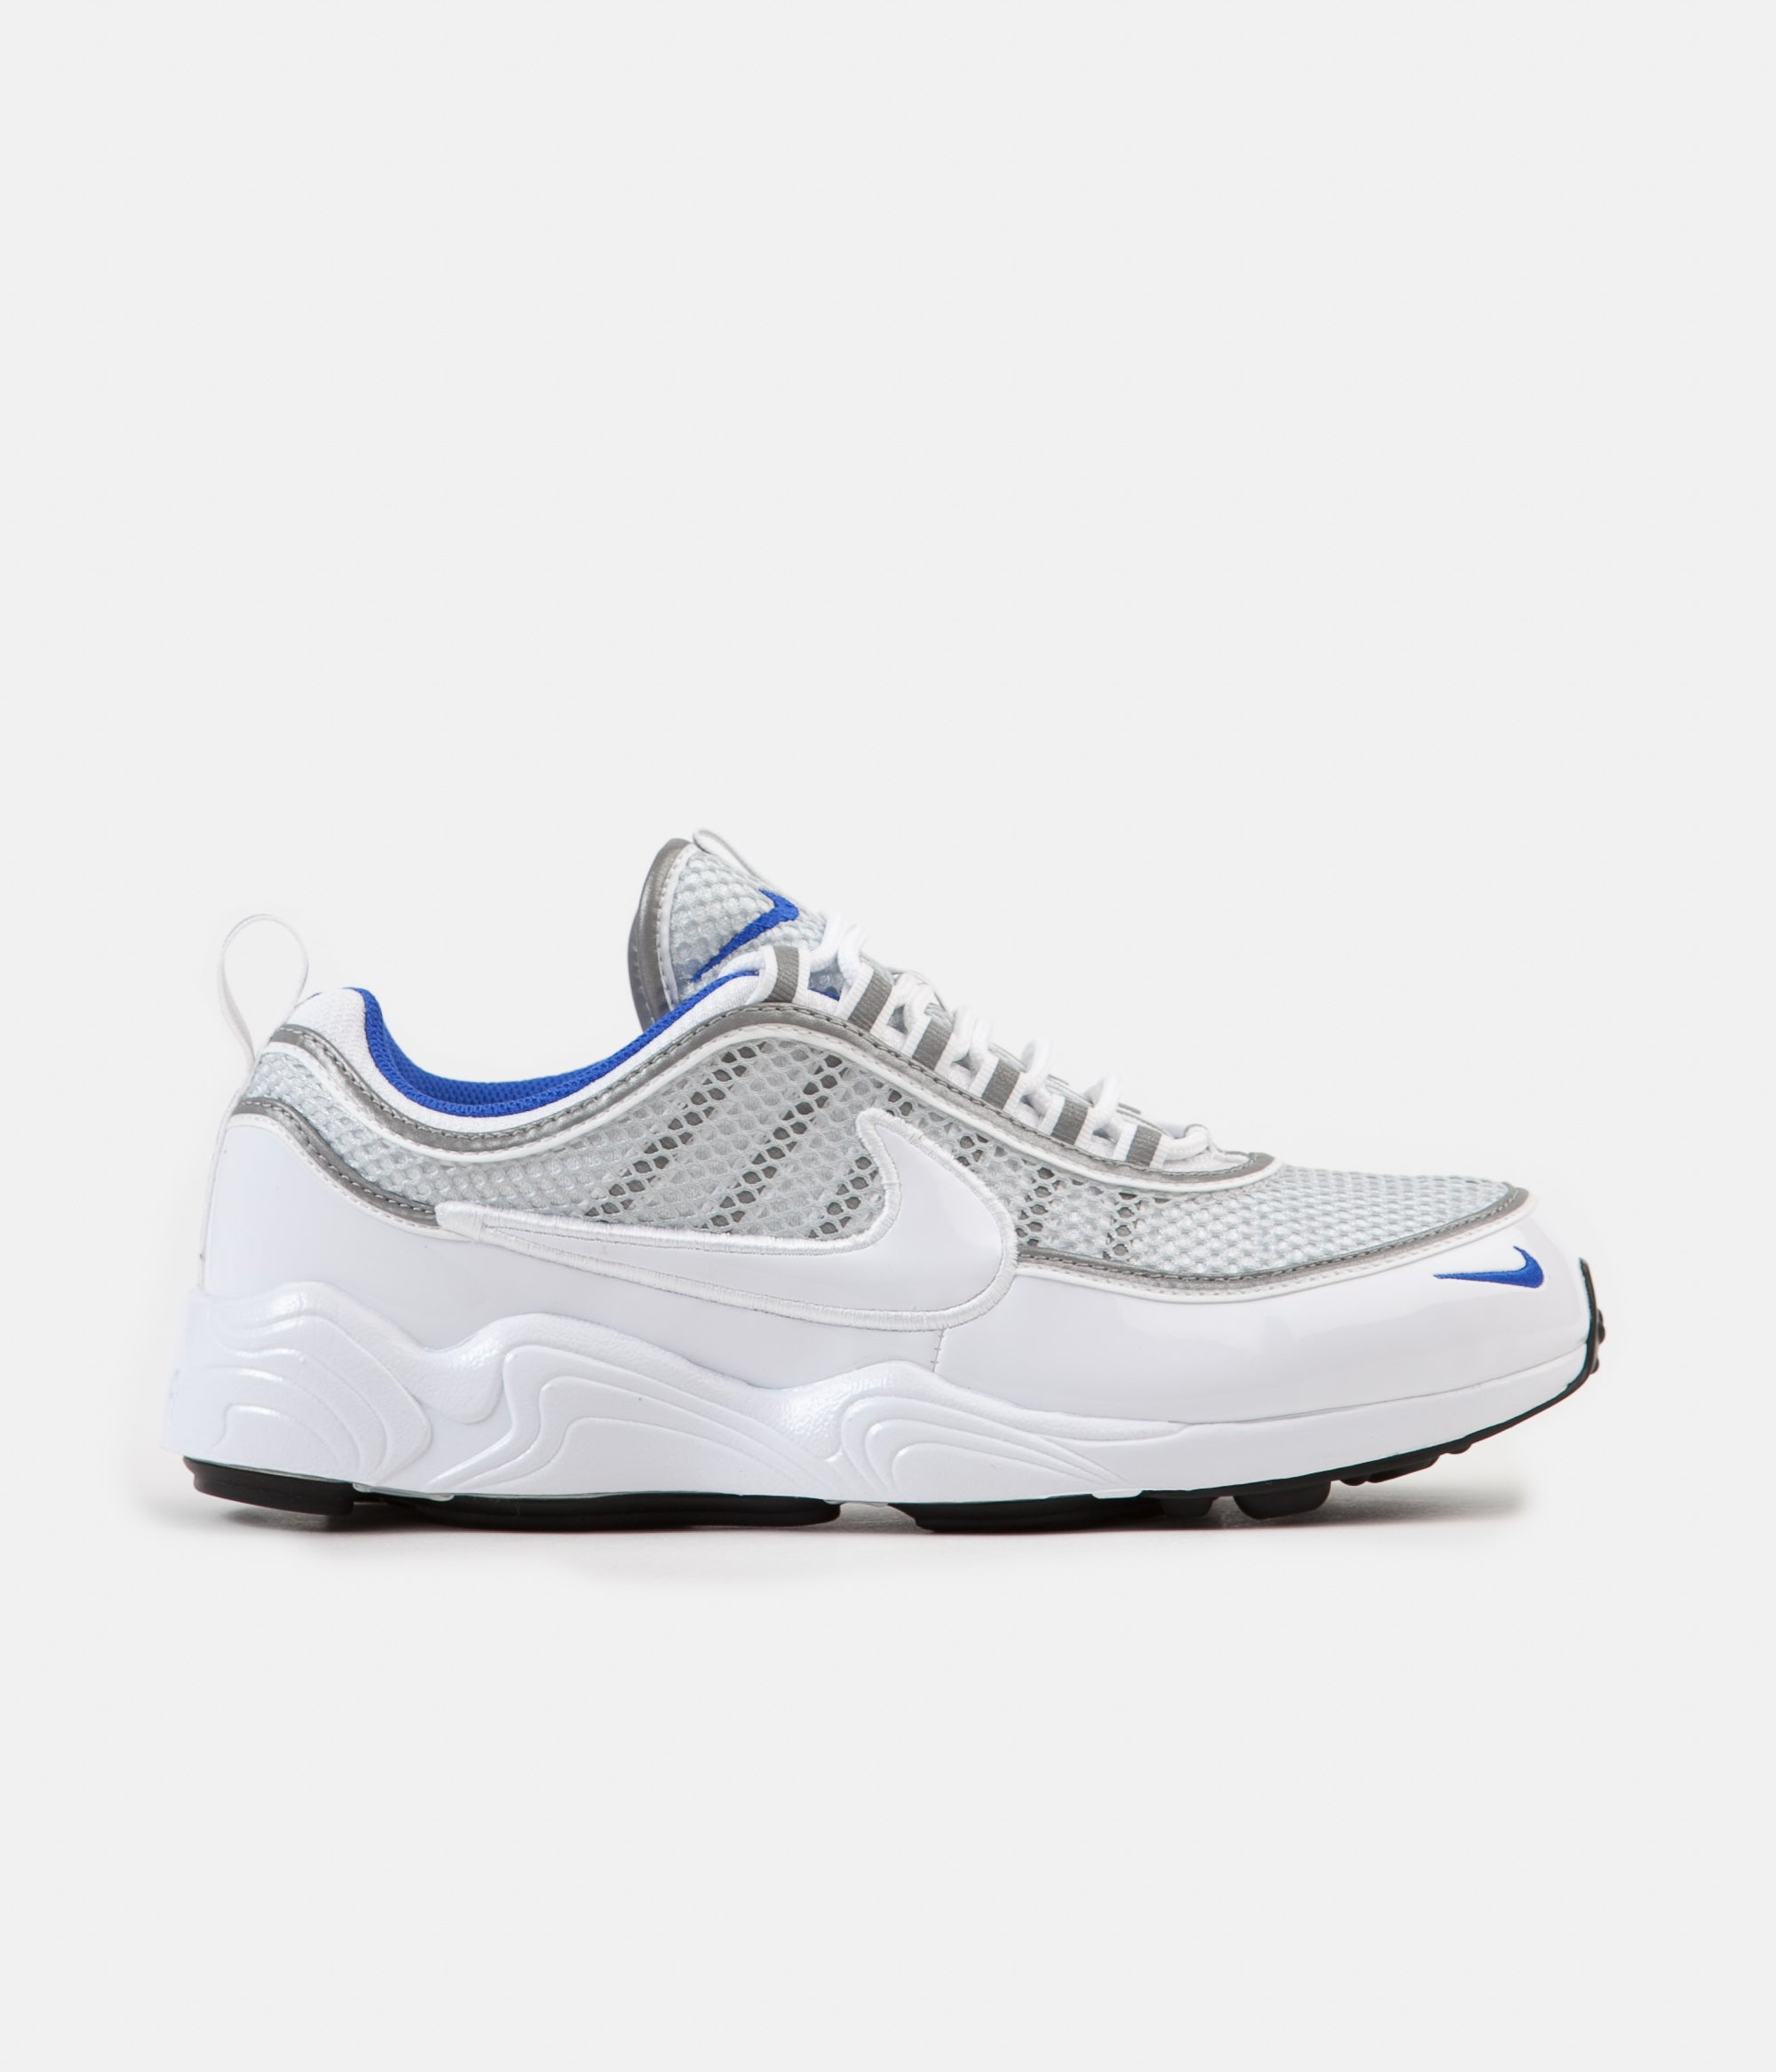 29ecee6cf3673 ... Nike Air Zoom Spiridon  16 Shoes - White   White - Pure Platinum -  Racer ...